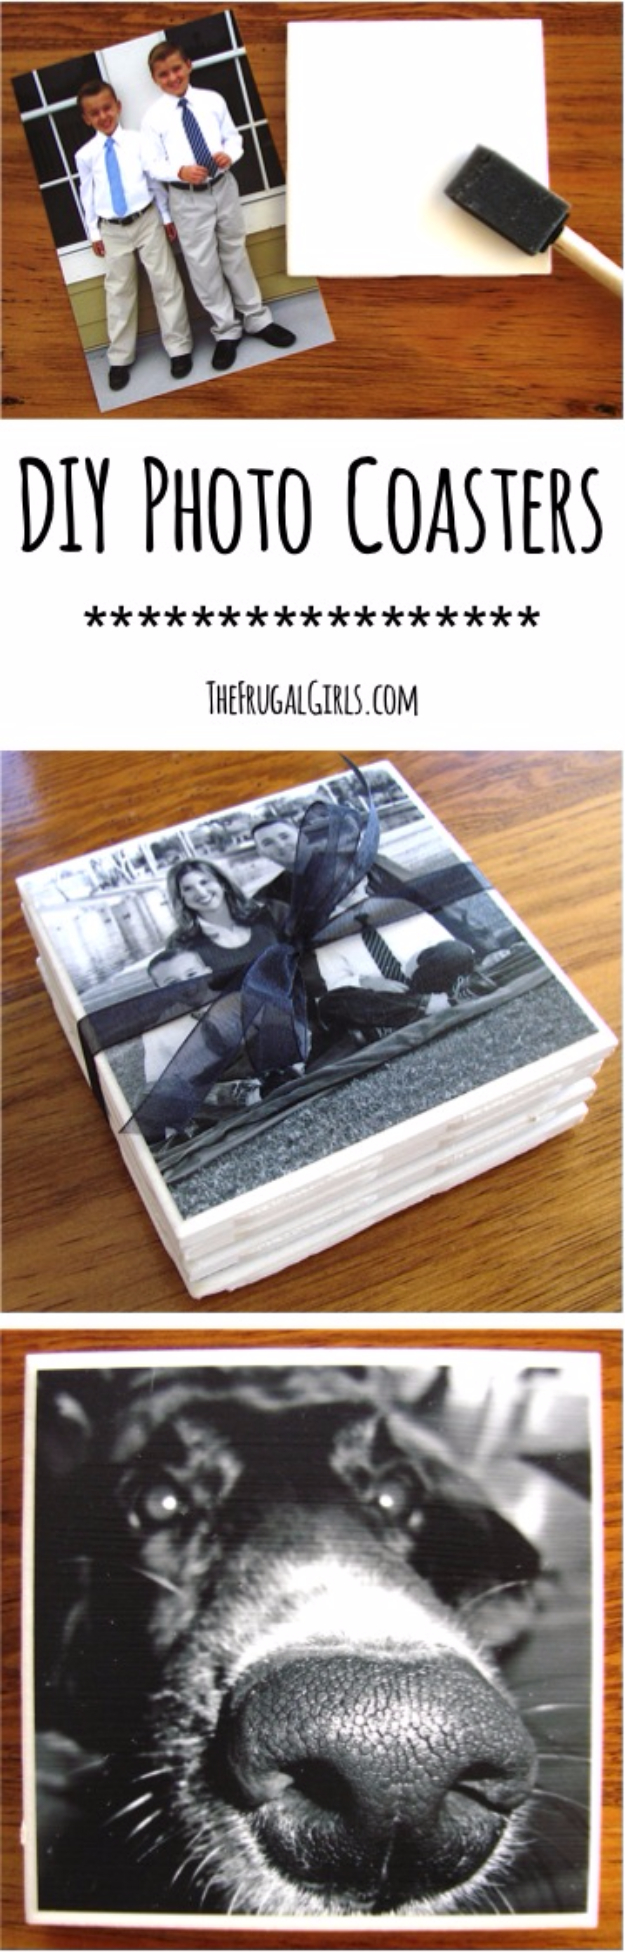 DIY Coasters - DIY Photo Coasters - Best Quick DIY Gifts and Home Decor - Easy Step by Step Tutorials for DIY Coaster Projects - Mod Podge, Tile, Painted, Photo and Sewing Projects - Cool Christmas Presents for Him and Her - DIY Projects and Crafts by DIY Joy